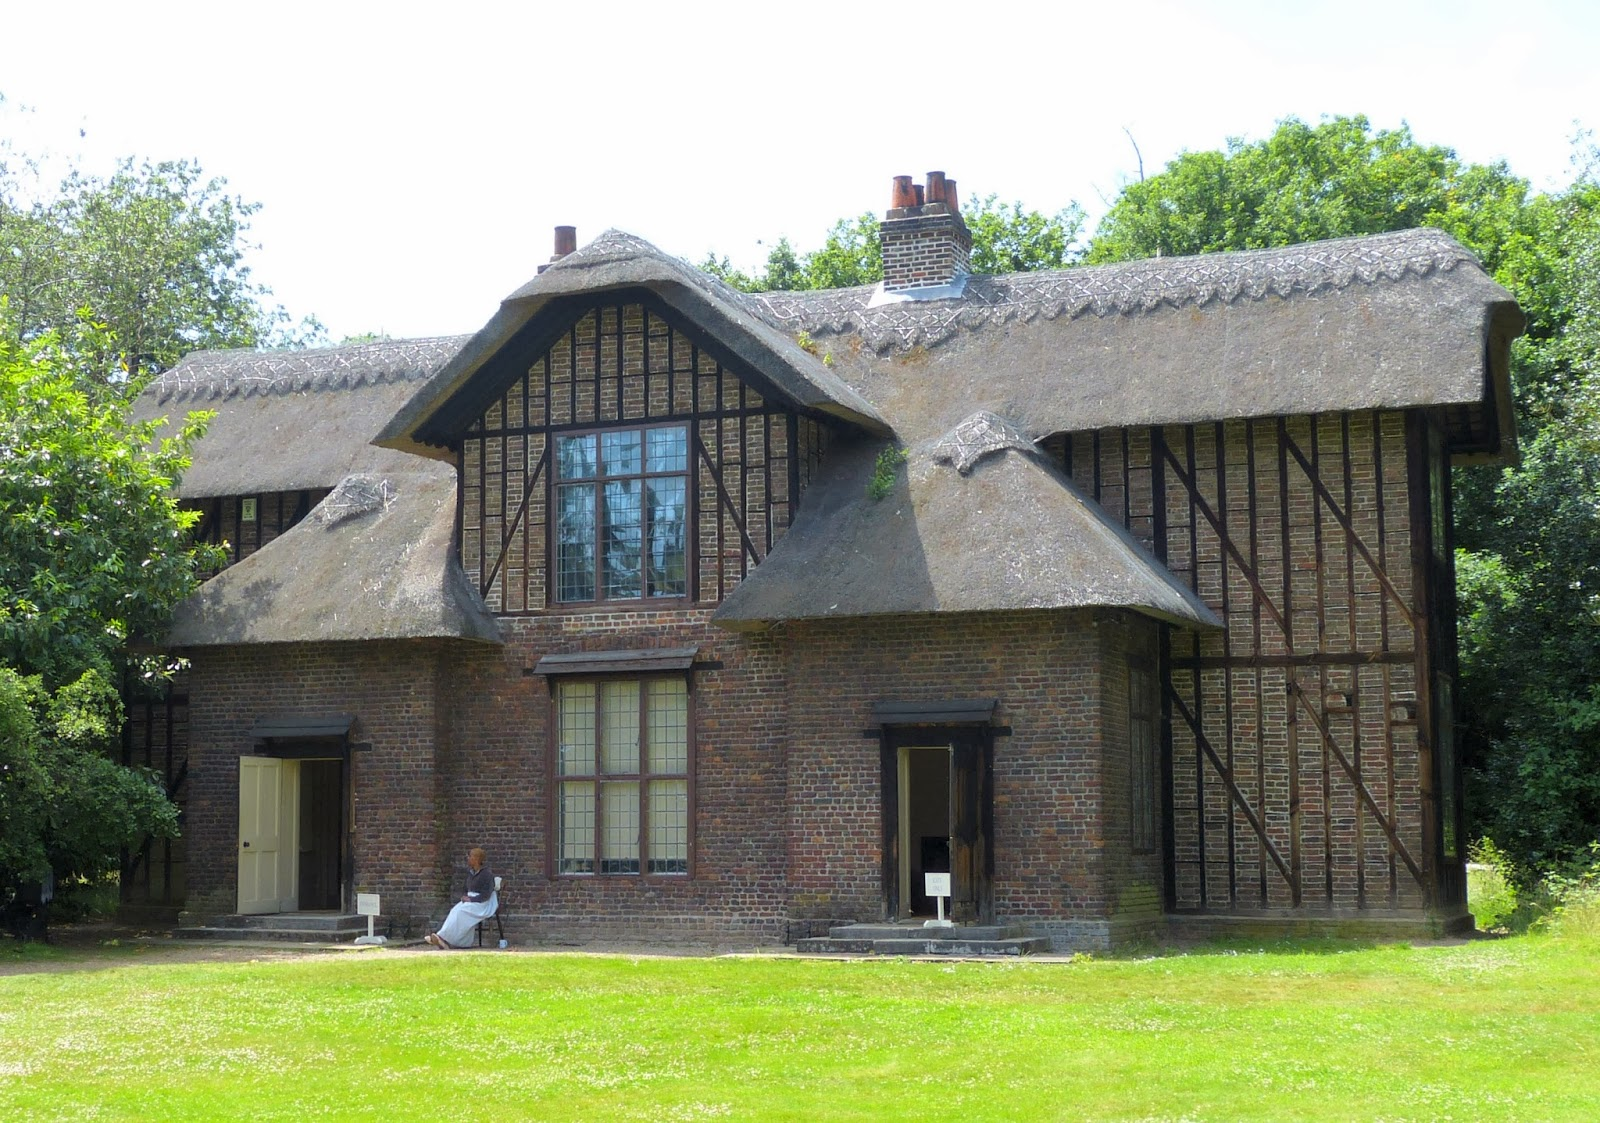 Queen Charlotte's Cottage, Kew Gardens, London